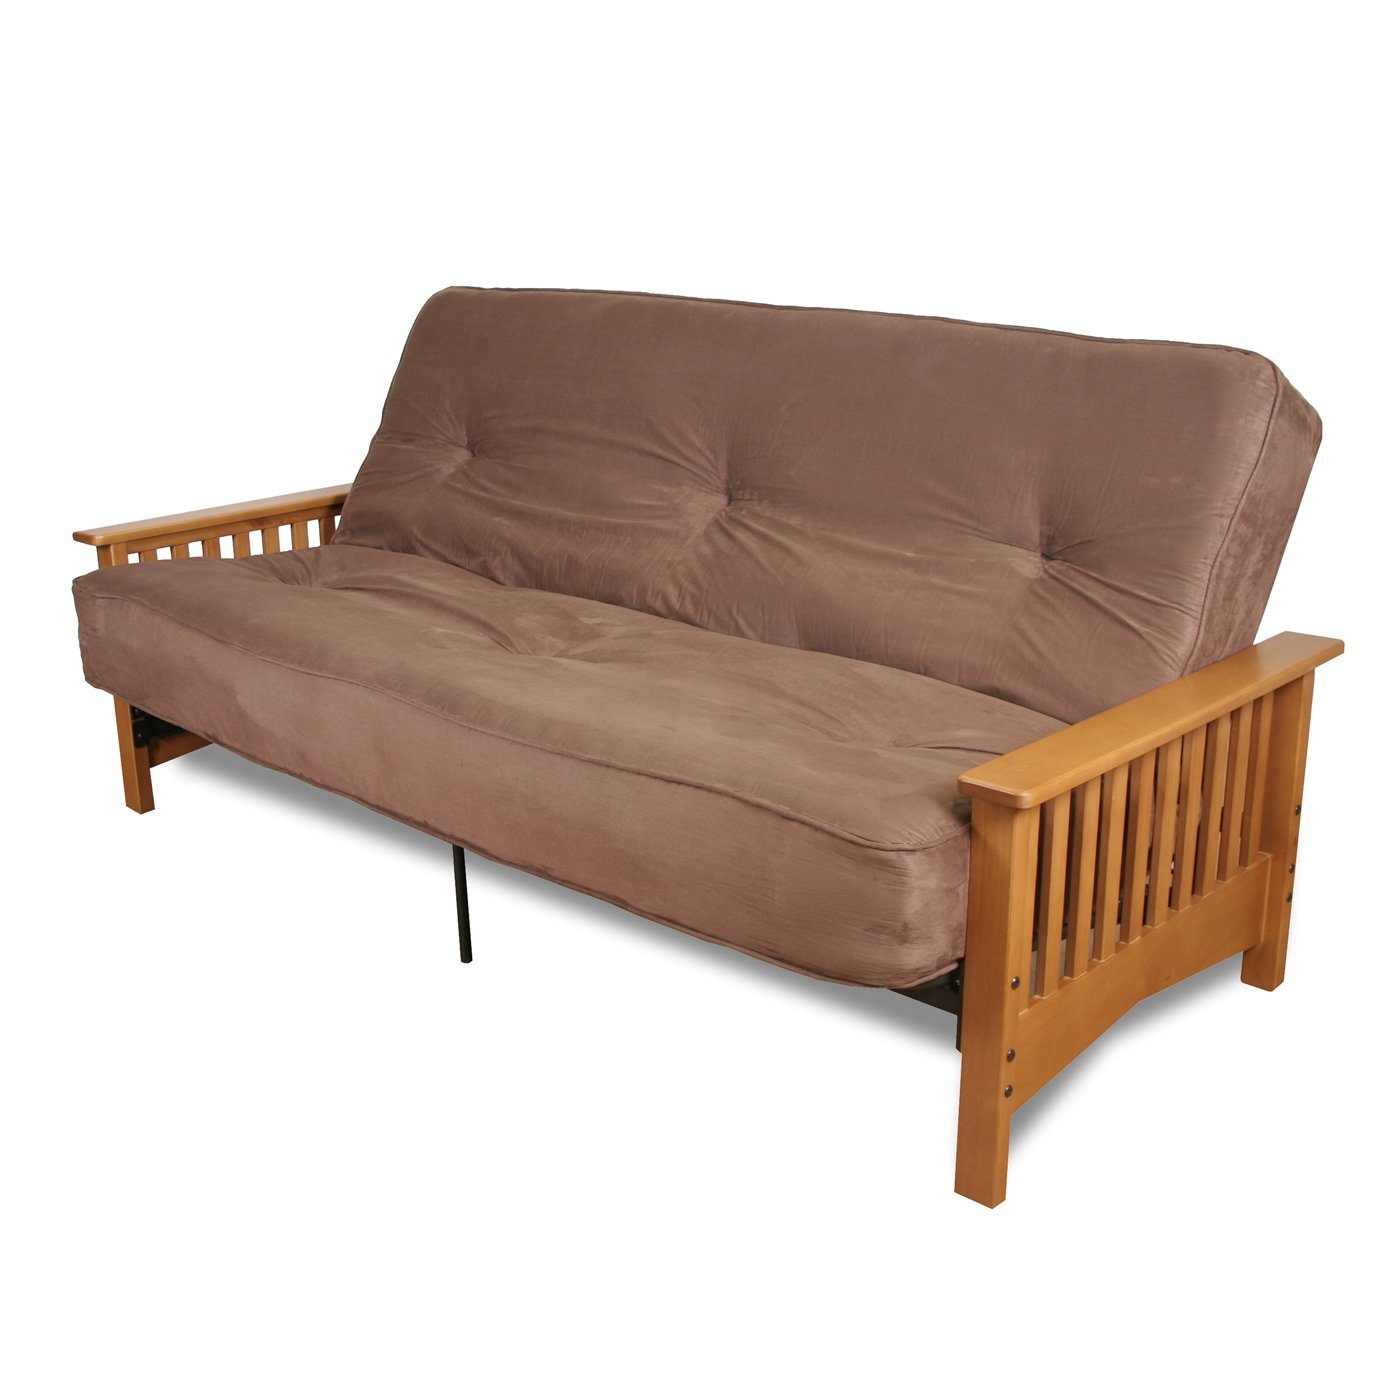 Classy Furniture in the Living room cheap futons for sale